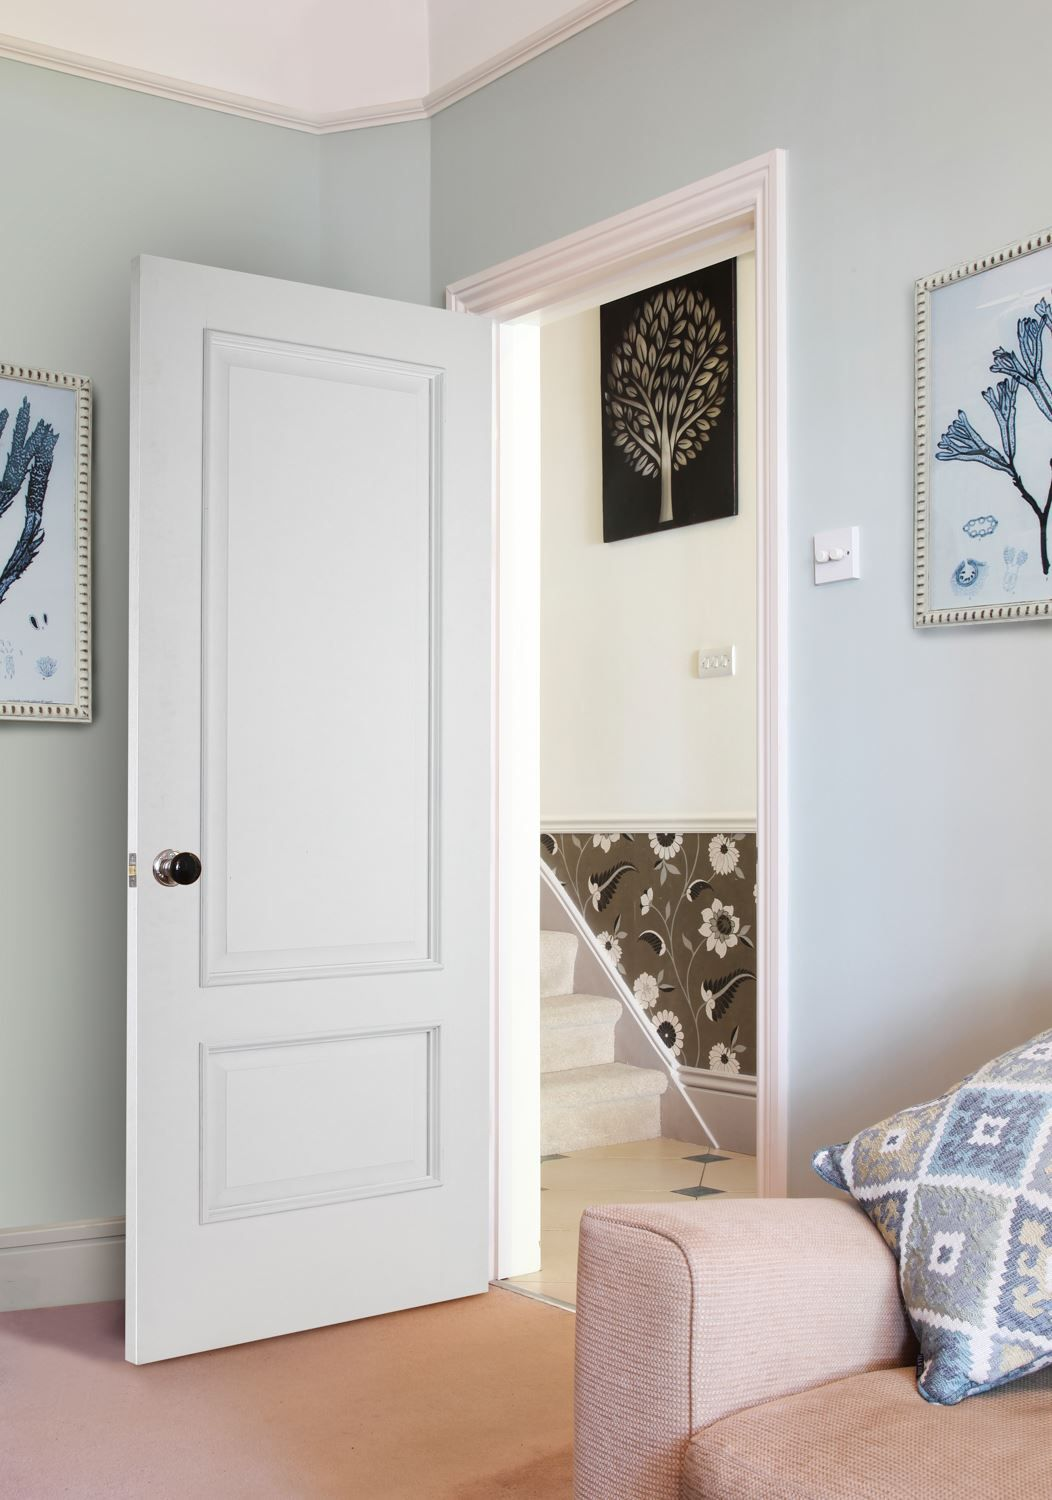 Find this Pin and more on Bespoke Doors. & Iris 2-Panel White (Bespoke) | Bespoke Doors | Pinterest | Bespoke ... pezcame.com